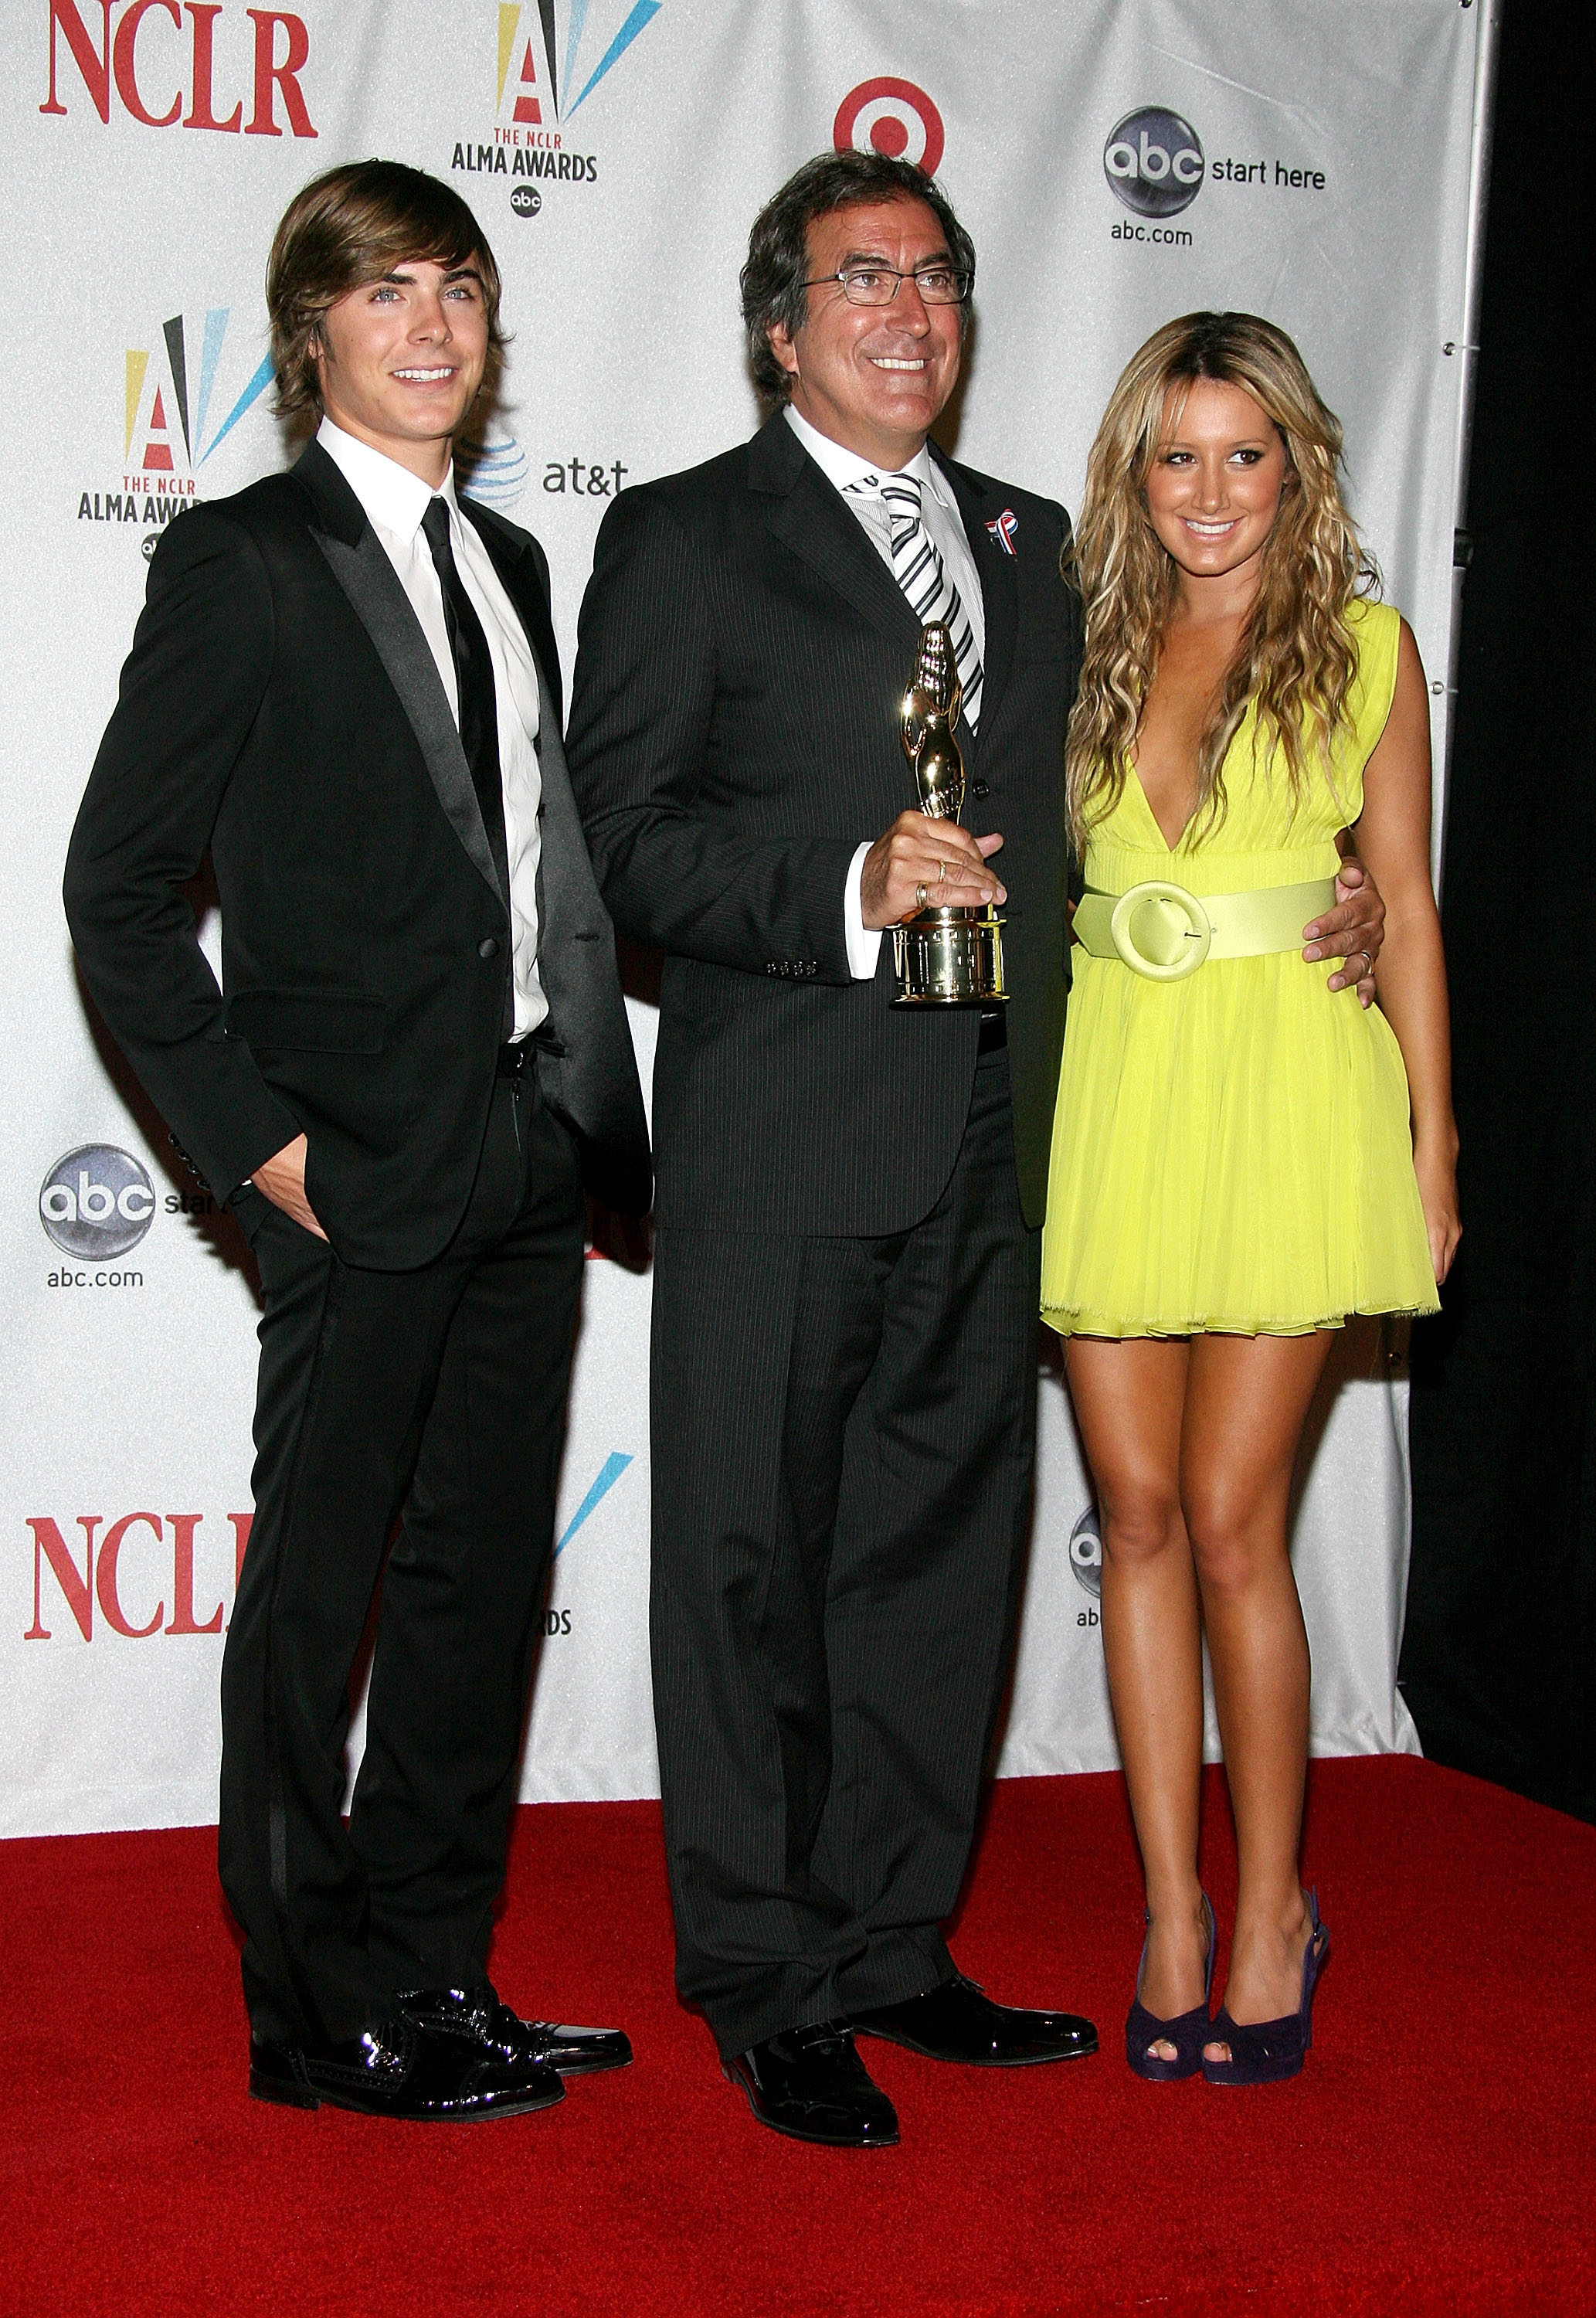 63620_babayaga_Ashley_Tisdale_ALMA_Awards_08-17-2008_028_123_984lo.jpg